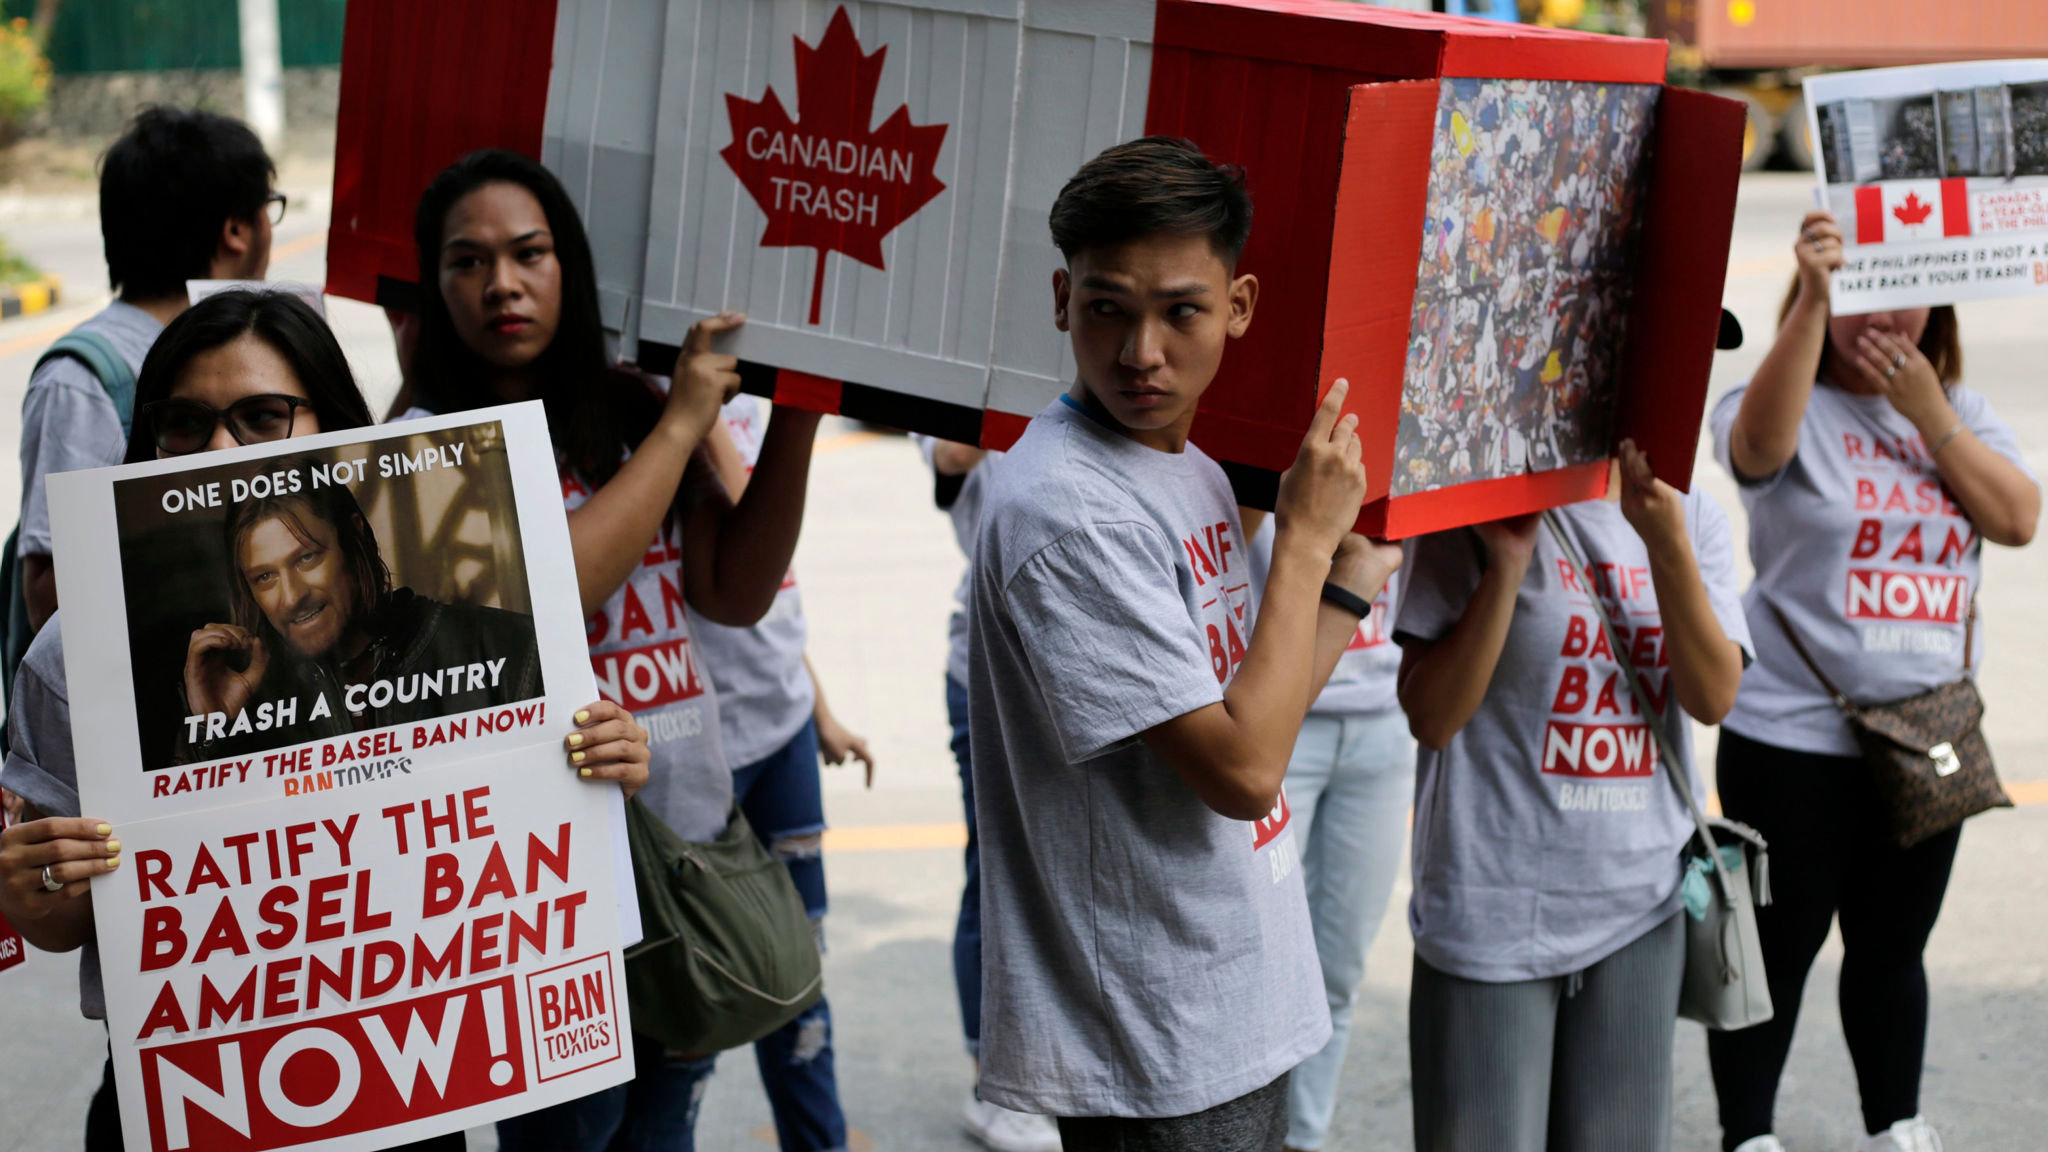 Philippines forces Canada to take back its rubbish